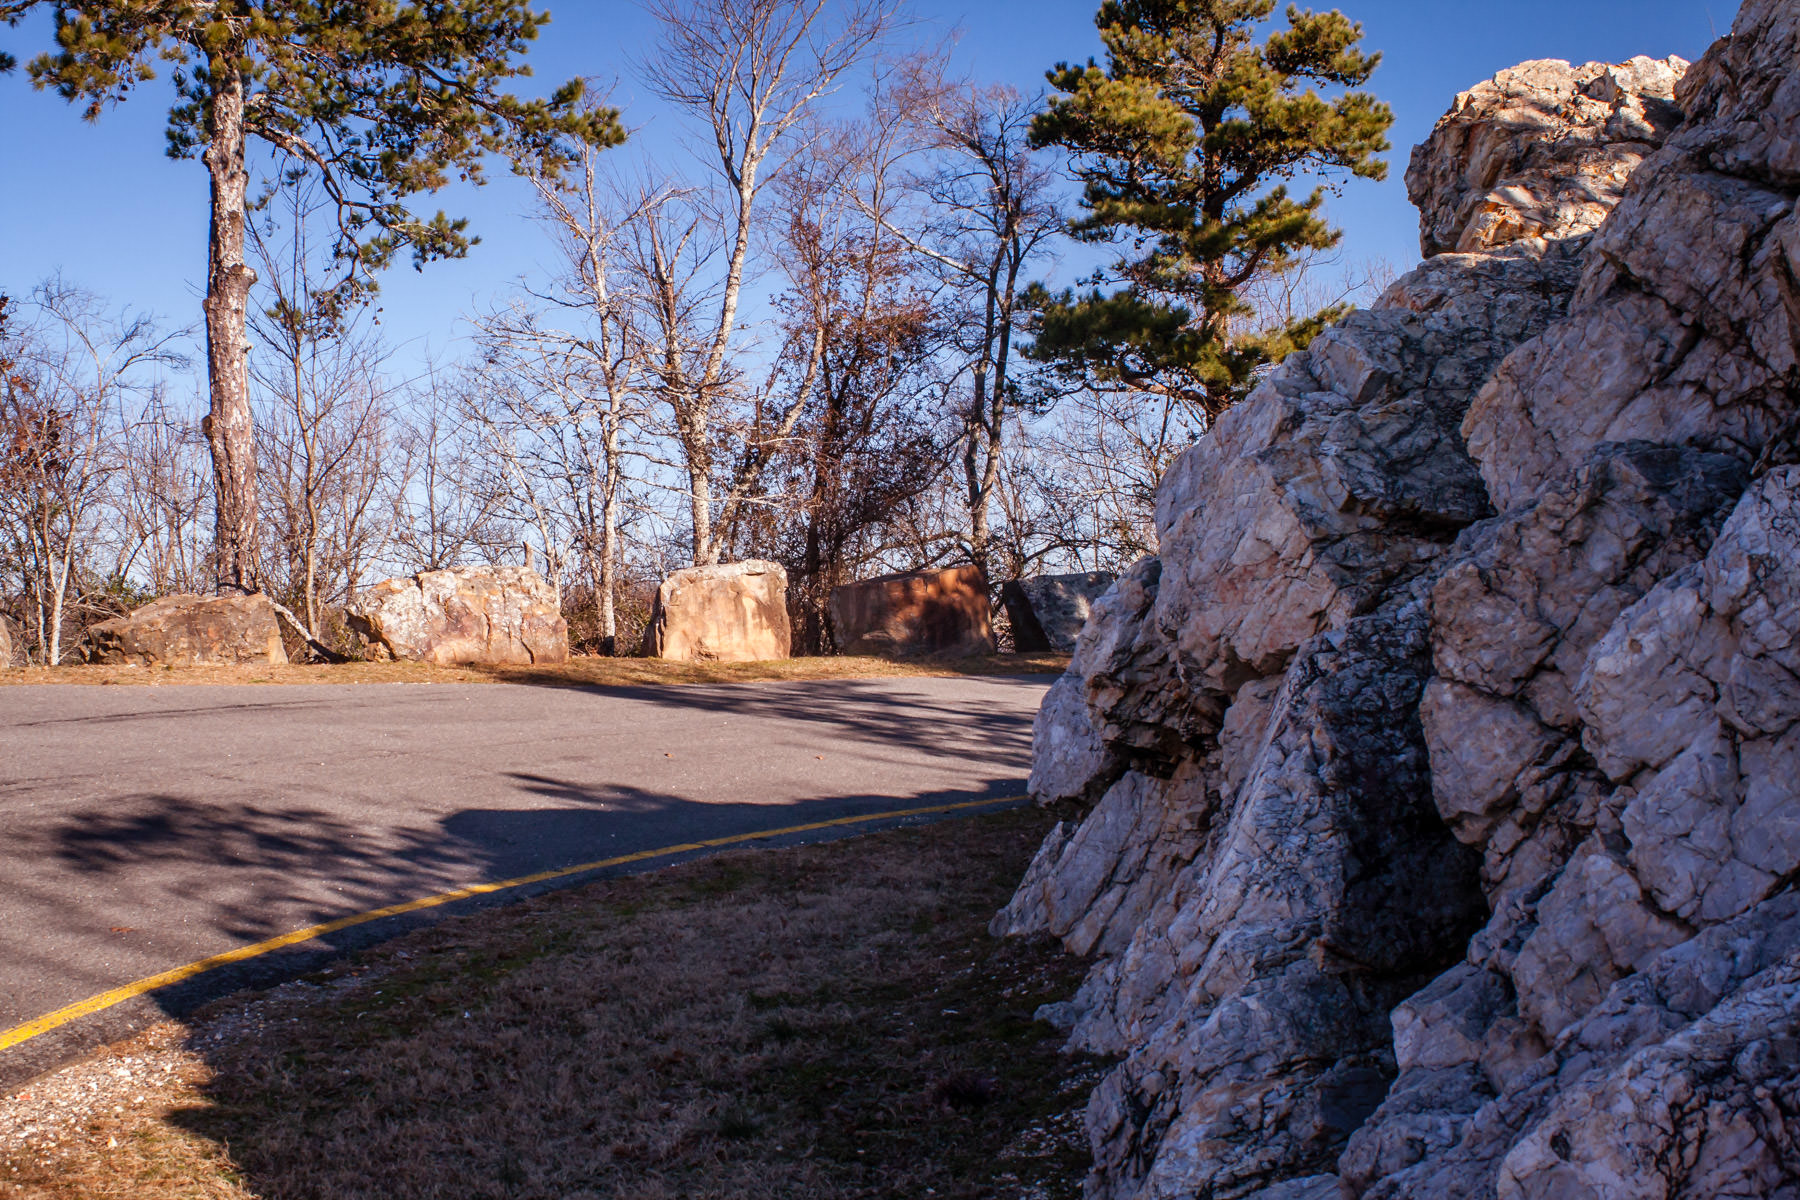 A road curves around rocks in the hills above Hot Springs, Arkansas.